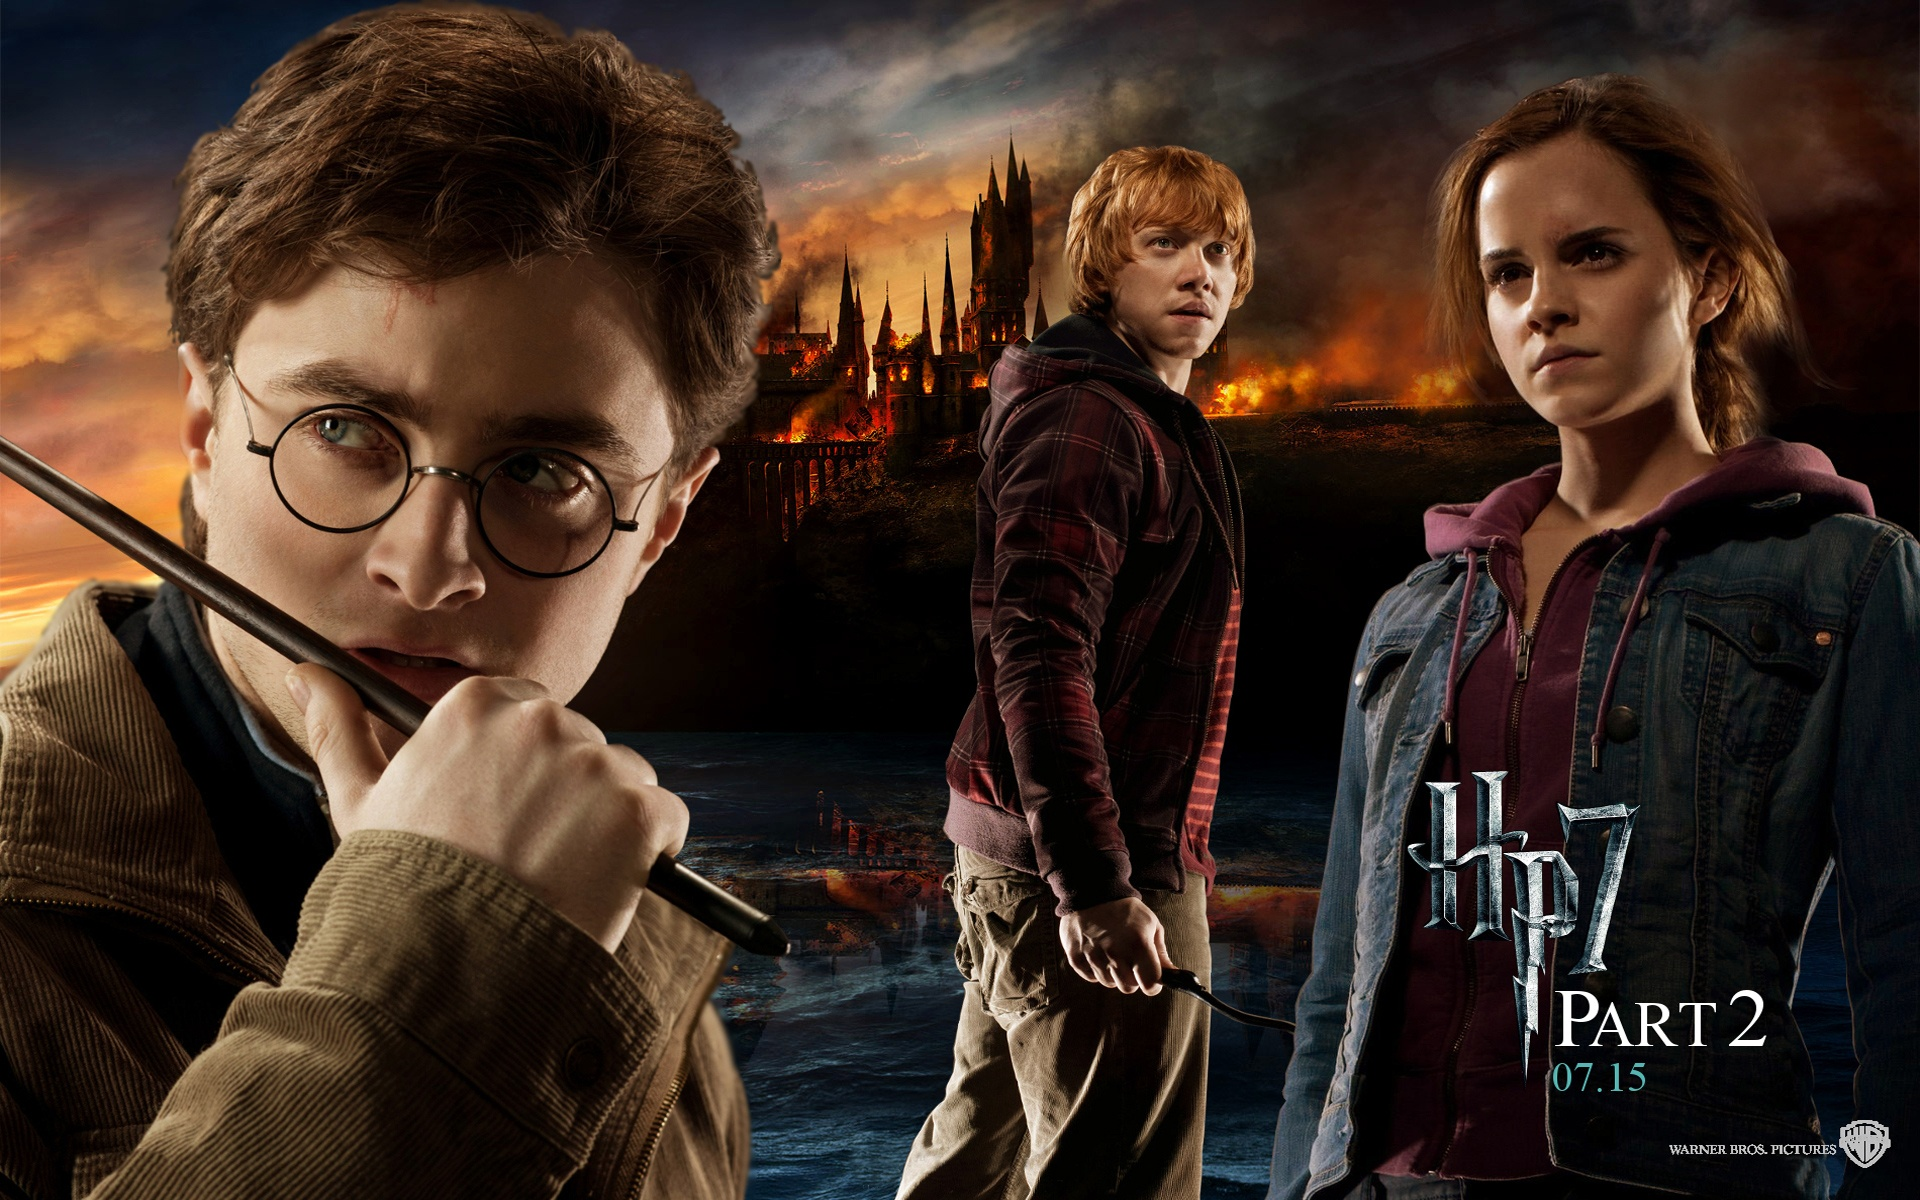 Harry Potter And The Deathly Hallows Part 2 Wallpapers Pictures